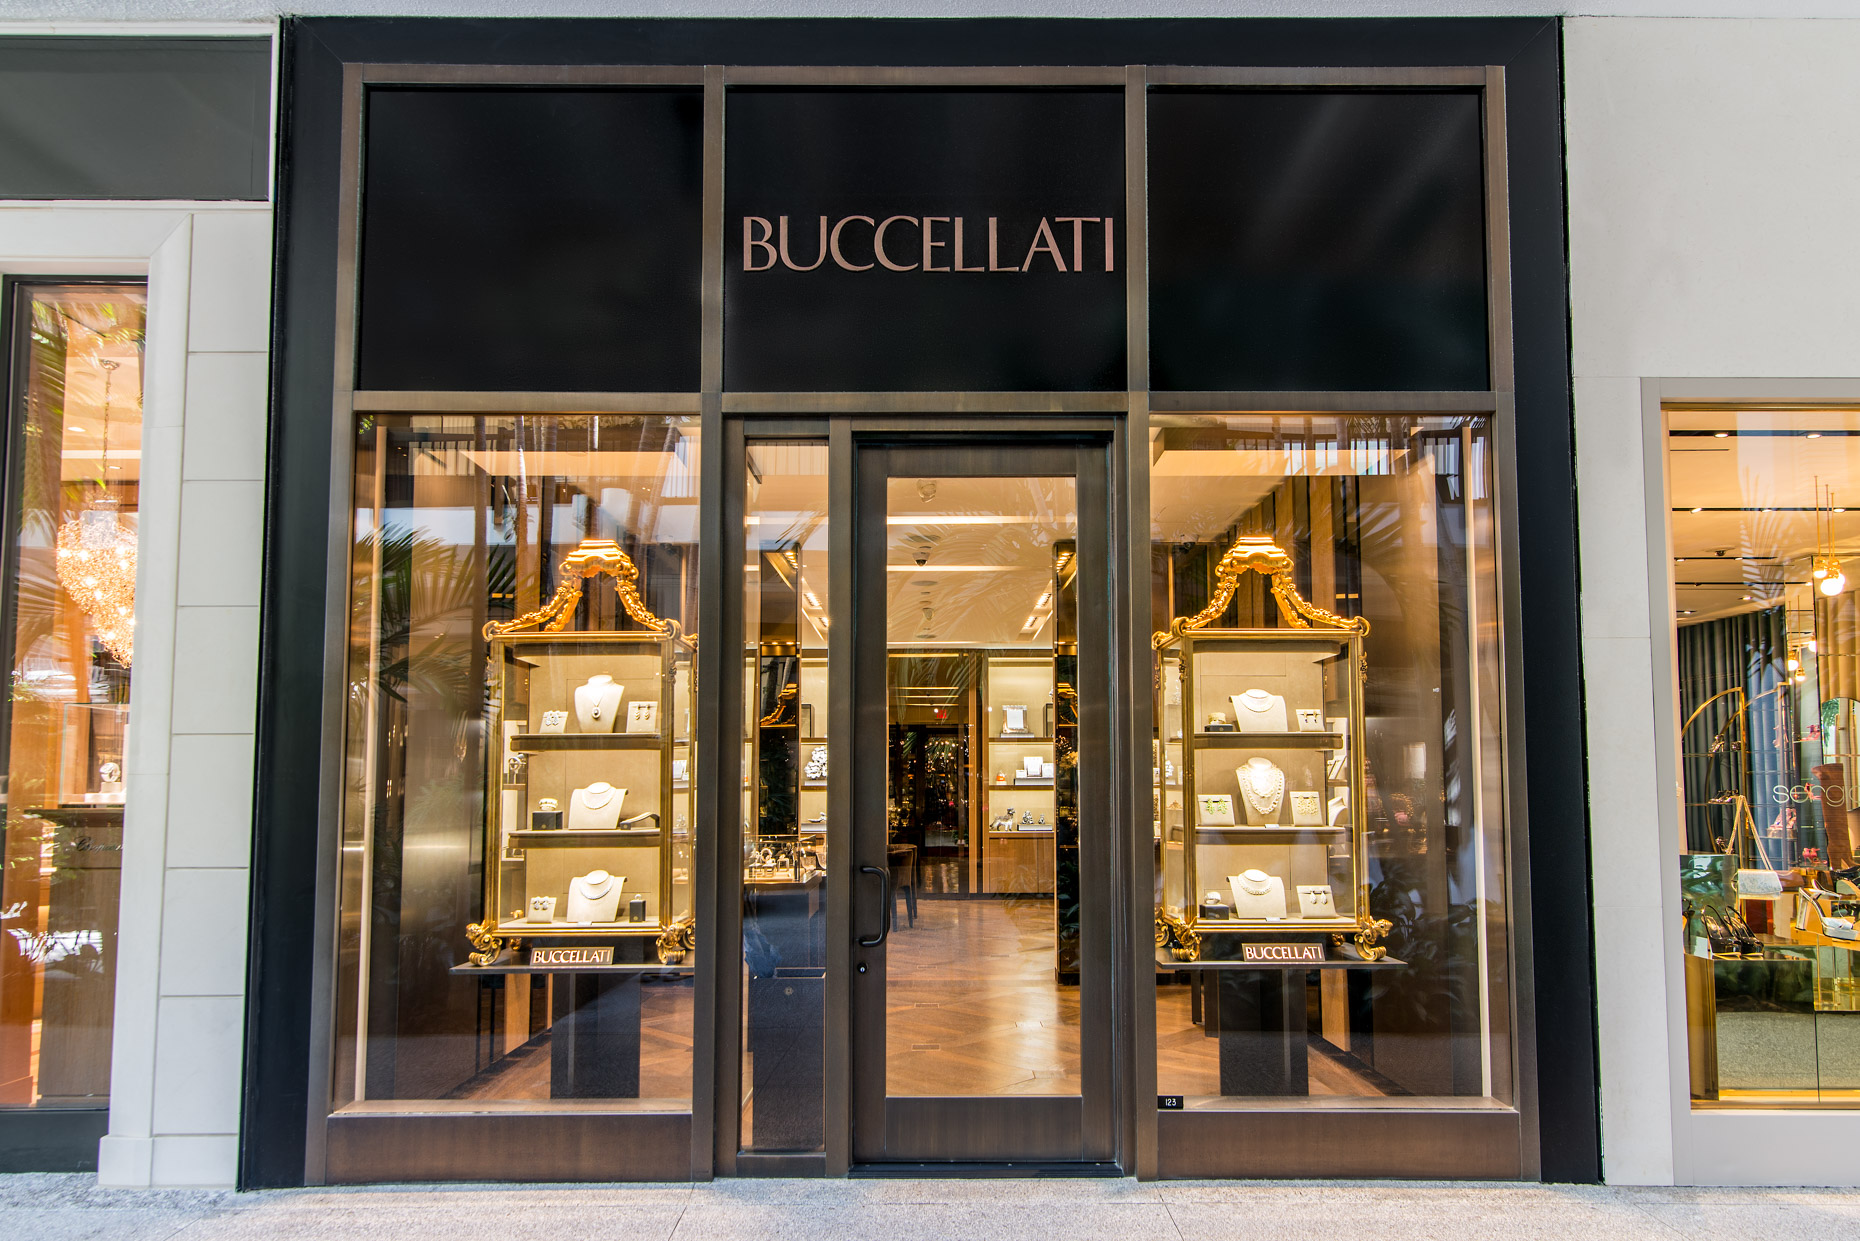 Buccellati - High end retail storefront photography - Miami - Jewelry